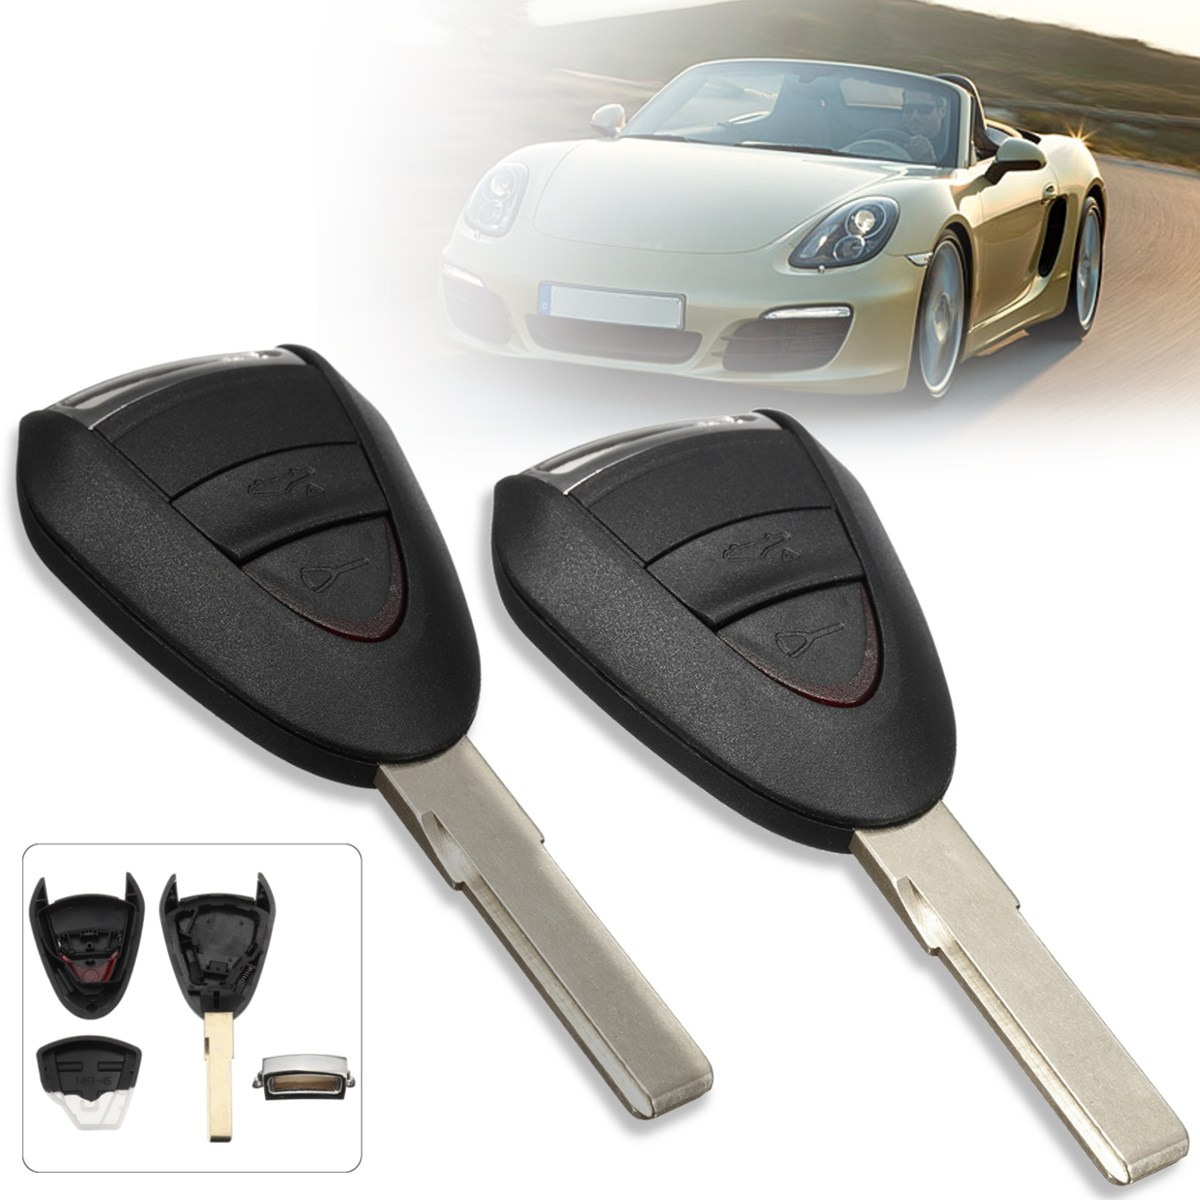 2Pcs 2 Buttons Lock Unlock Car Remote Key Fob Case Shell Uncut Blade For Porsche/Carrera 911 997 Boxster S 2S 4S Turbo